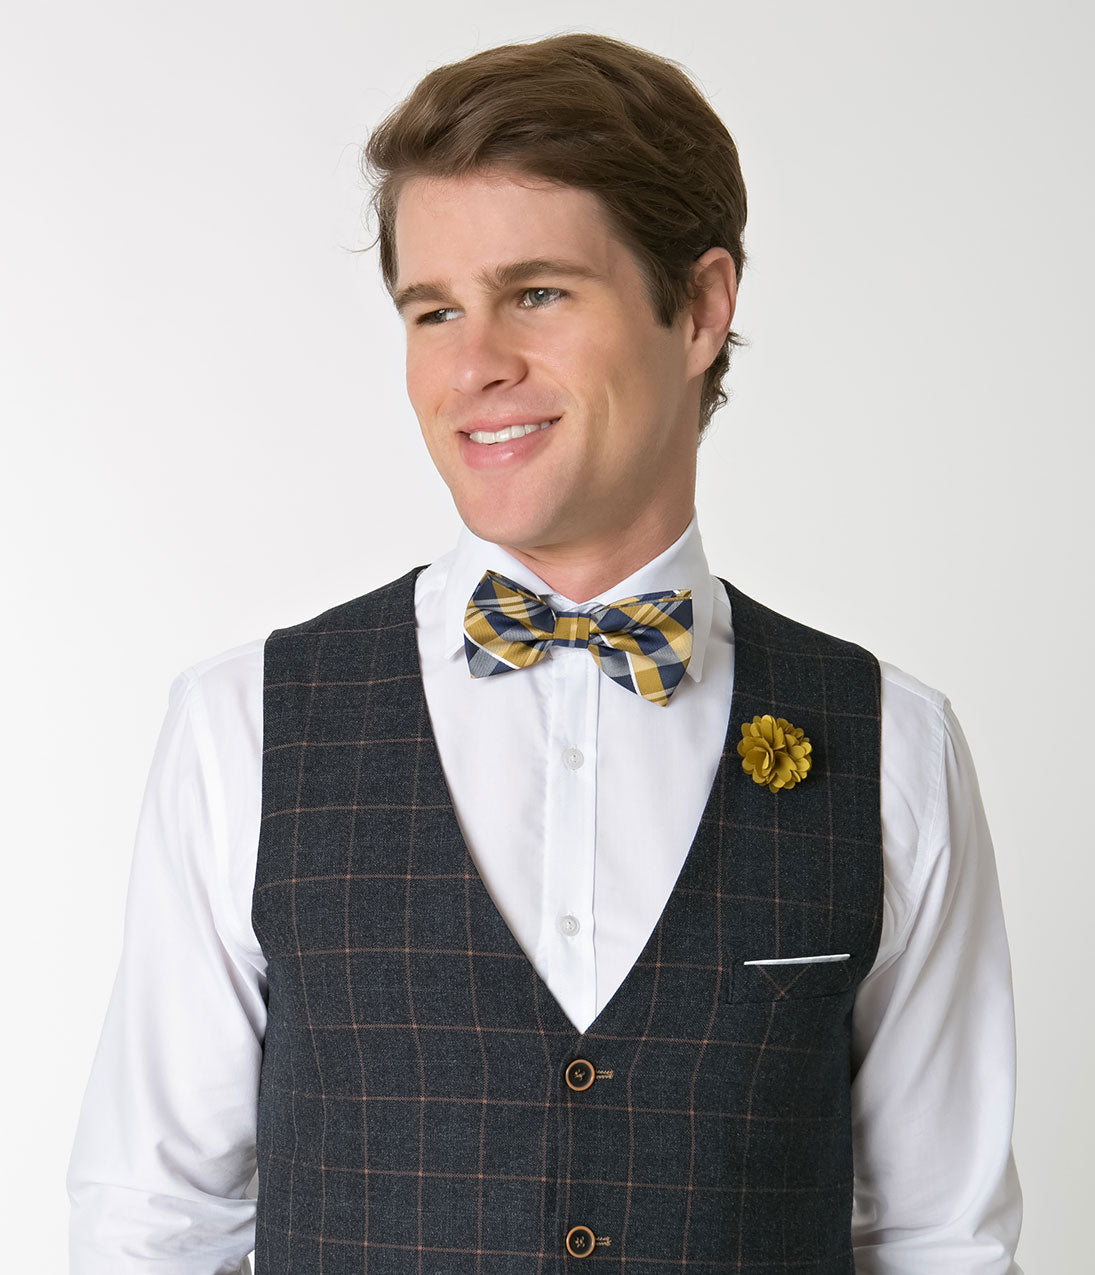 1940s Men's Fashion Clothing Styles Yellow  Navy Plaid Bow Tie  Lapel Pin Set $16.00 AT vintagedancer.com